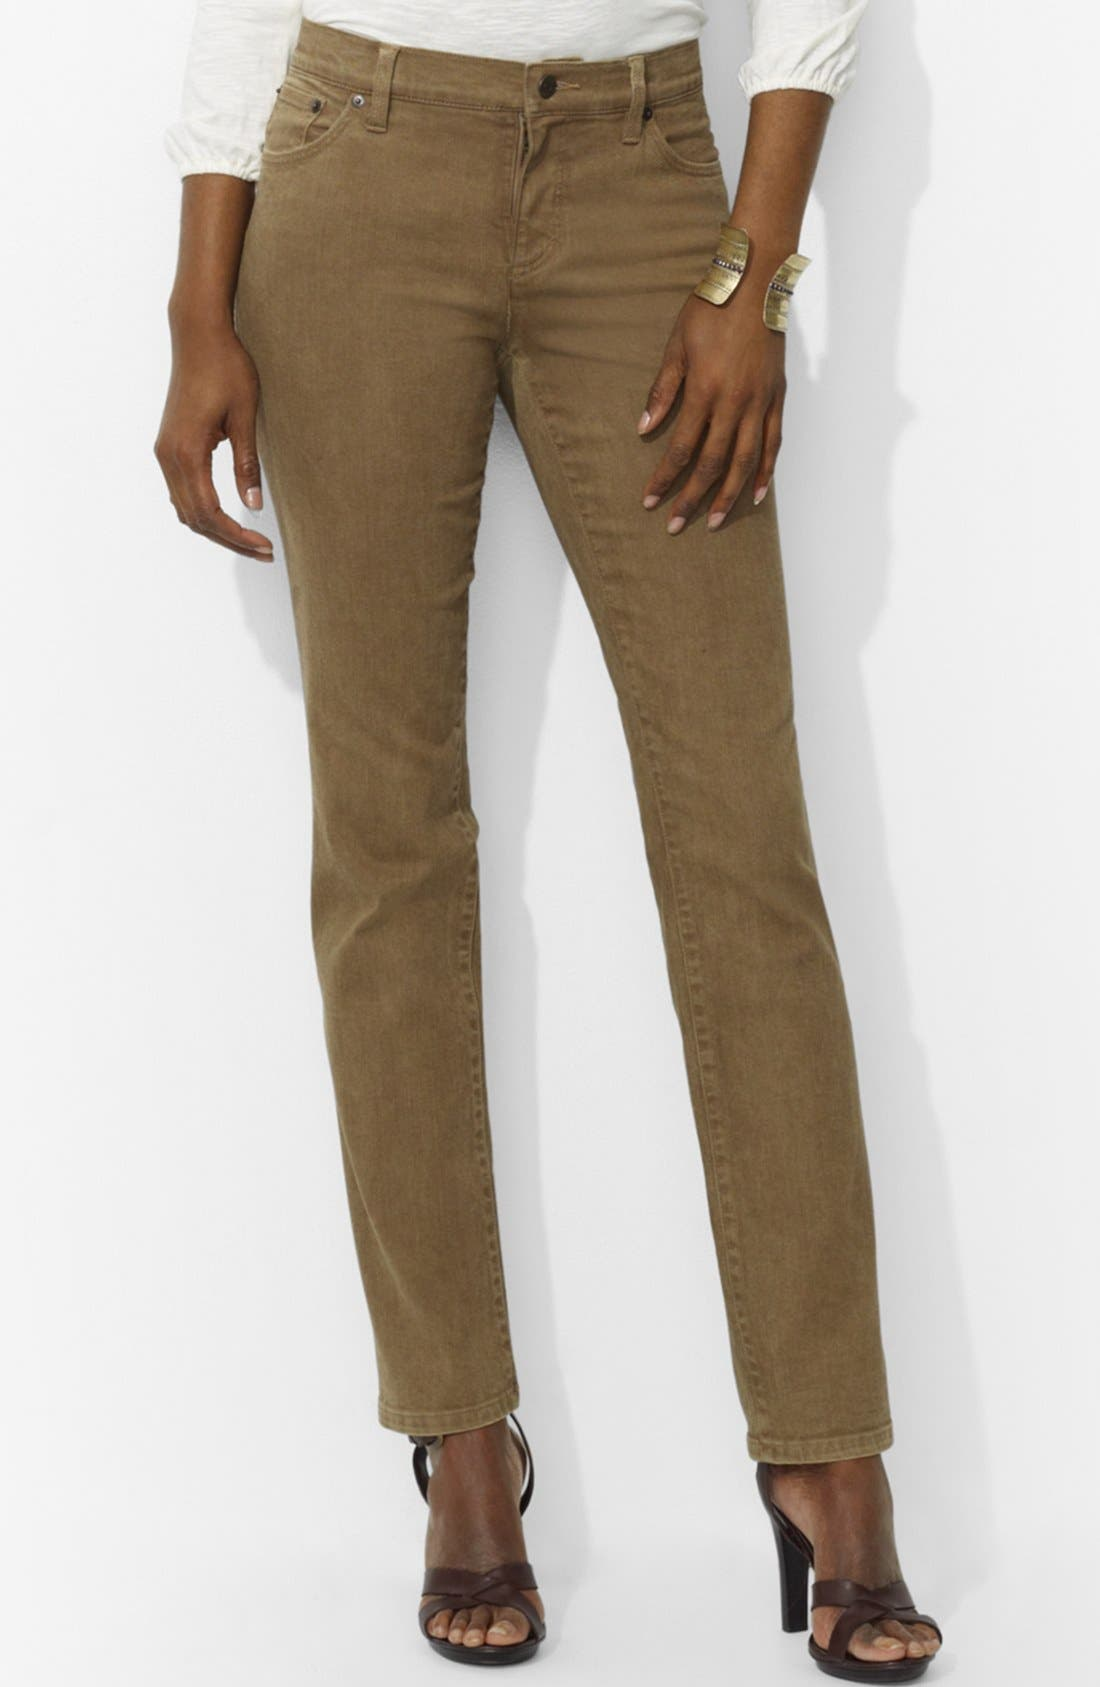 Alternate Image 1 Selected - Lauren Ralph Lauren Colored Slim Straight Leg Jeans (Petite)